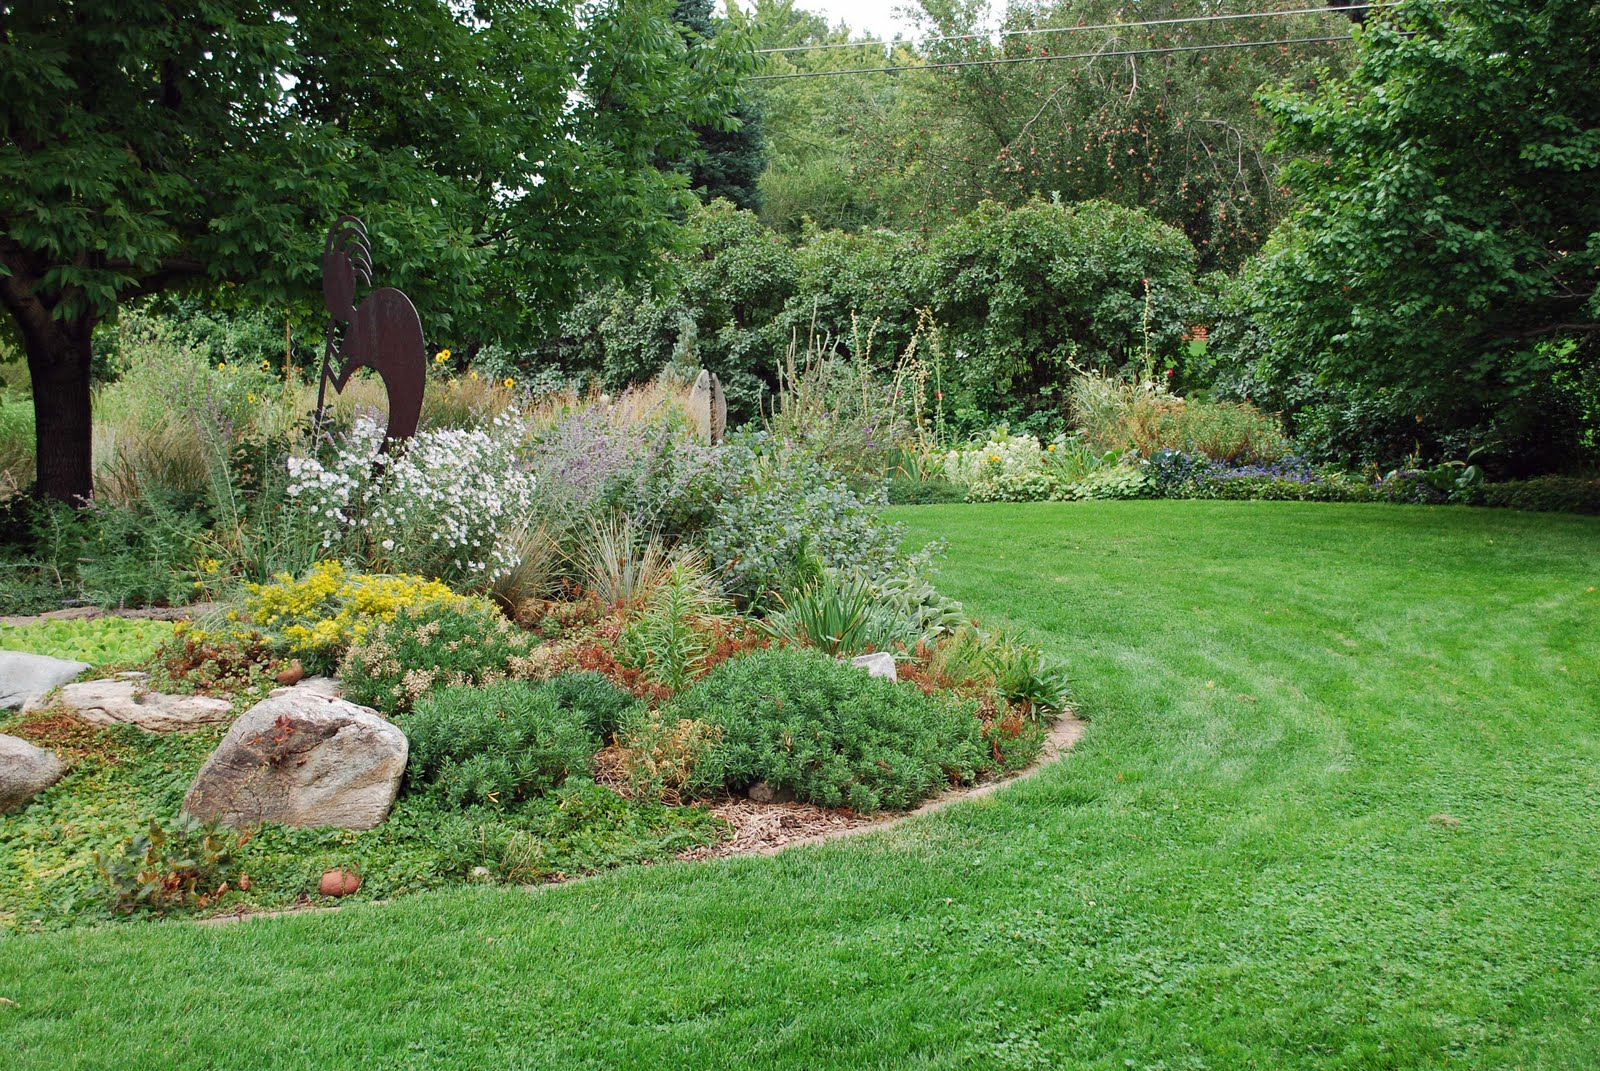 Landscape design focus low maintenance garden share bristol for Best low maintenance landscaping